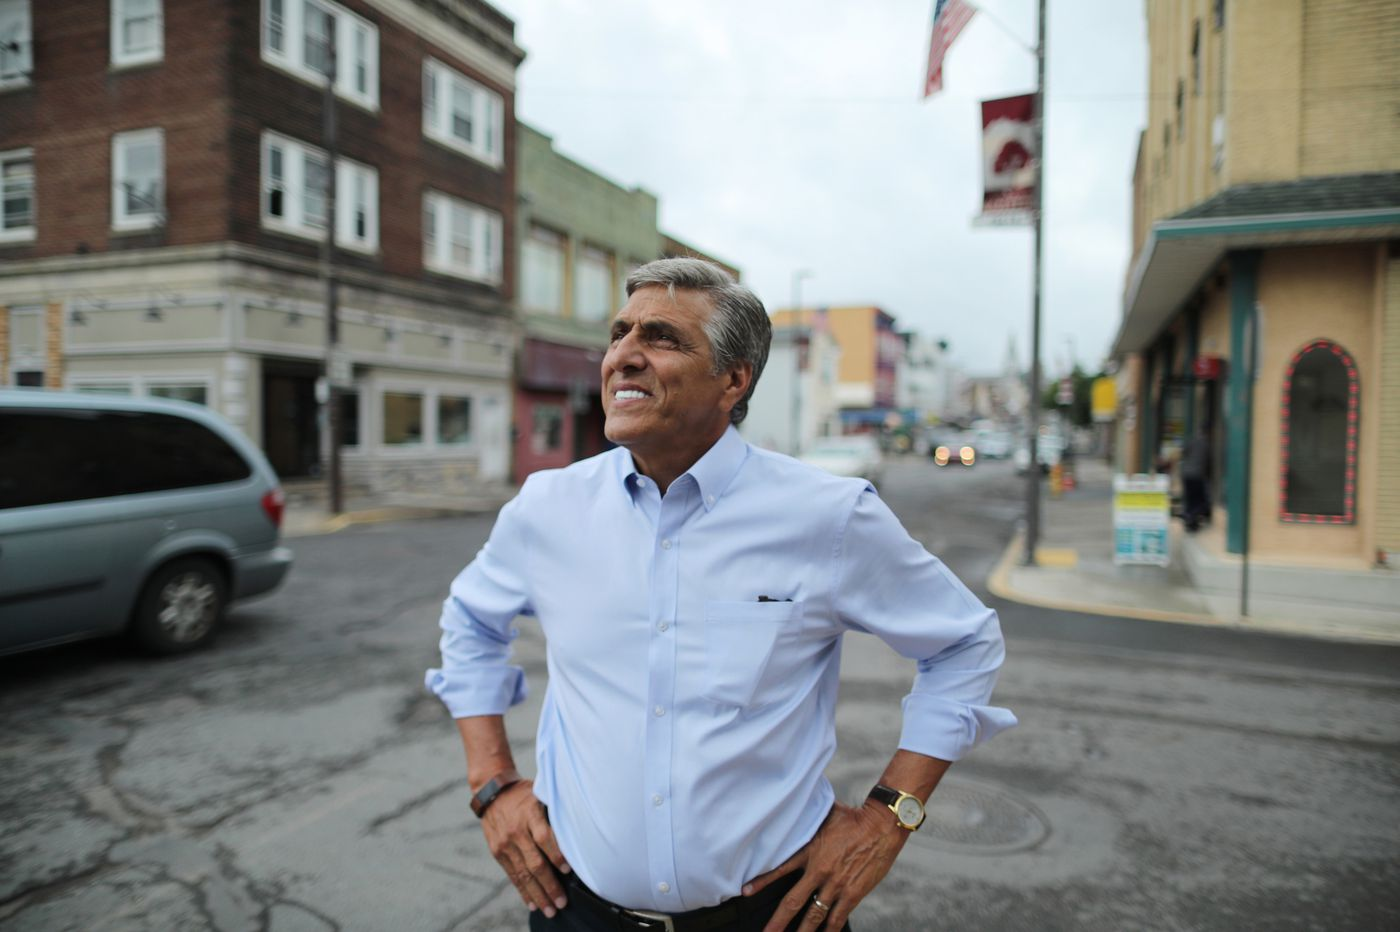 Barletta voices his support for alleged hate group